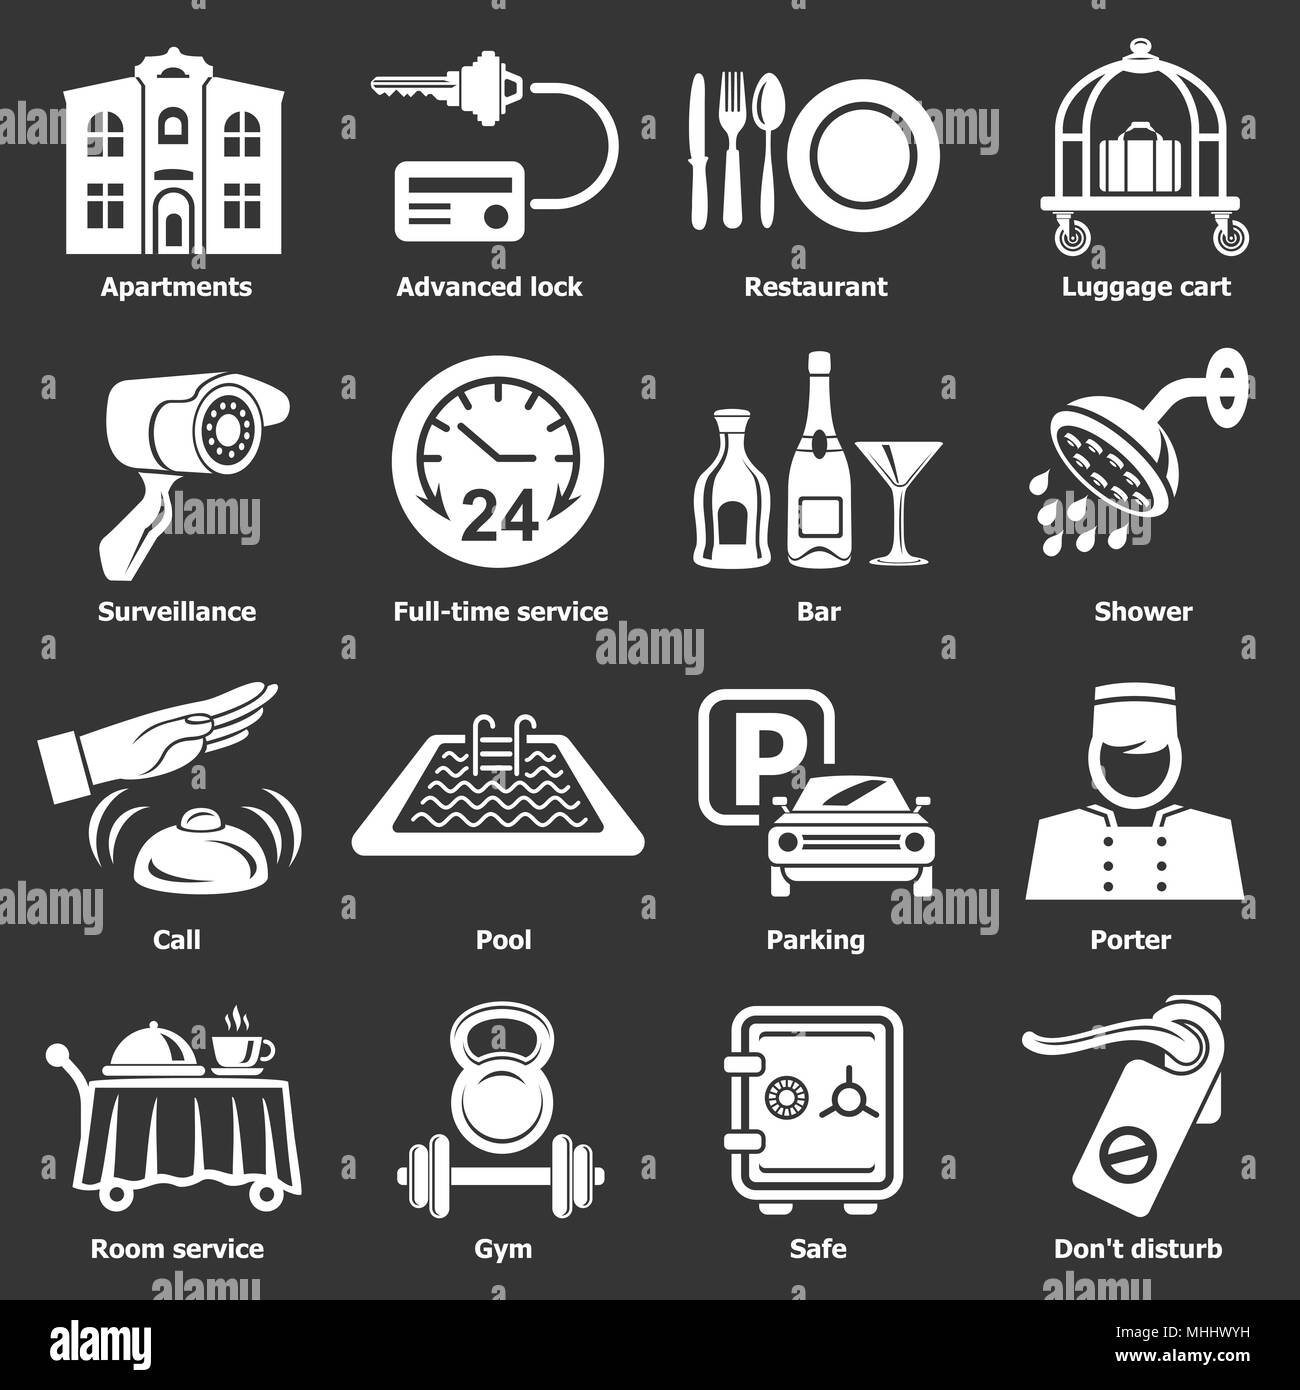 Hotel service icons set grey vector - Stock Image